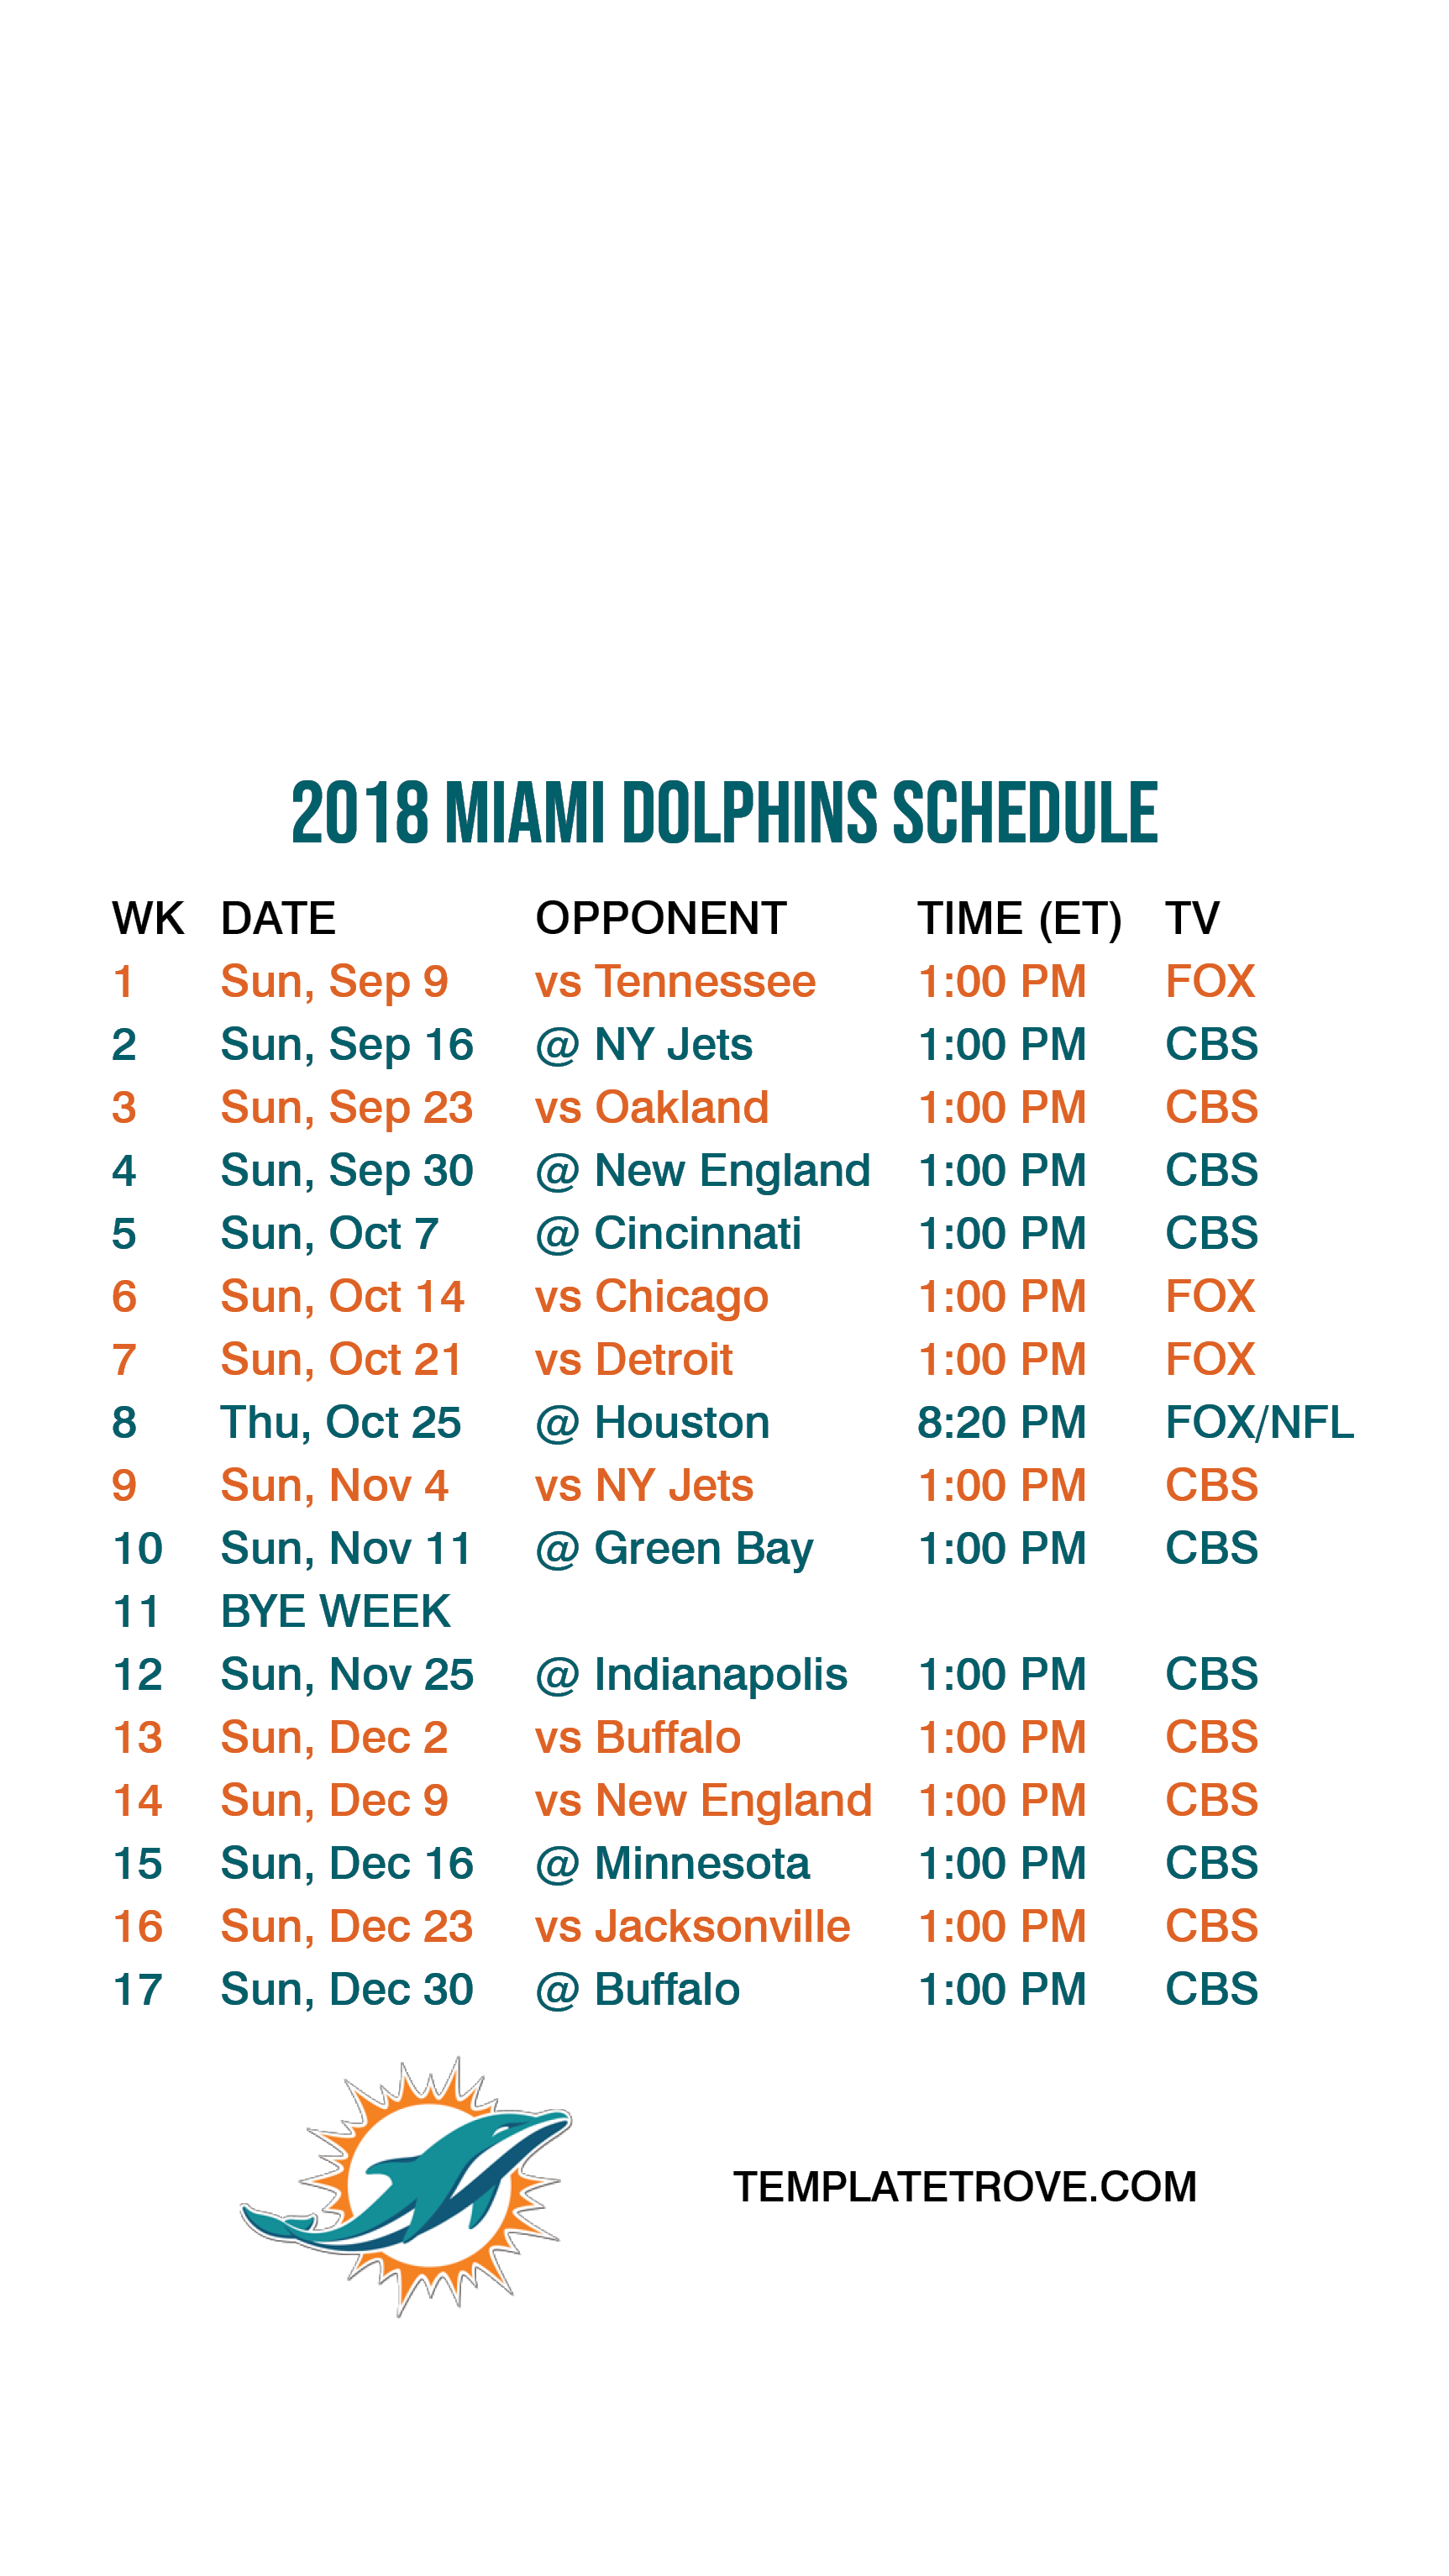 Buffalo Bills Iphone Wallpaper 2018 2019 Miami Dolphins Lock Screen Schedule For Iphone 6